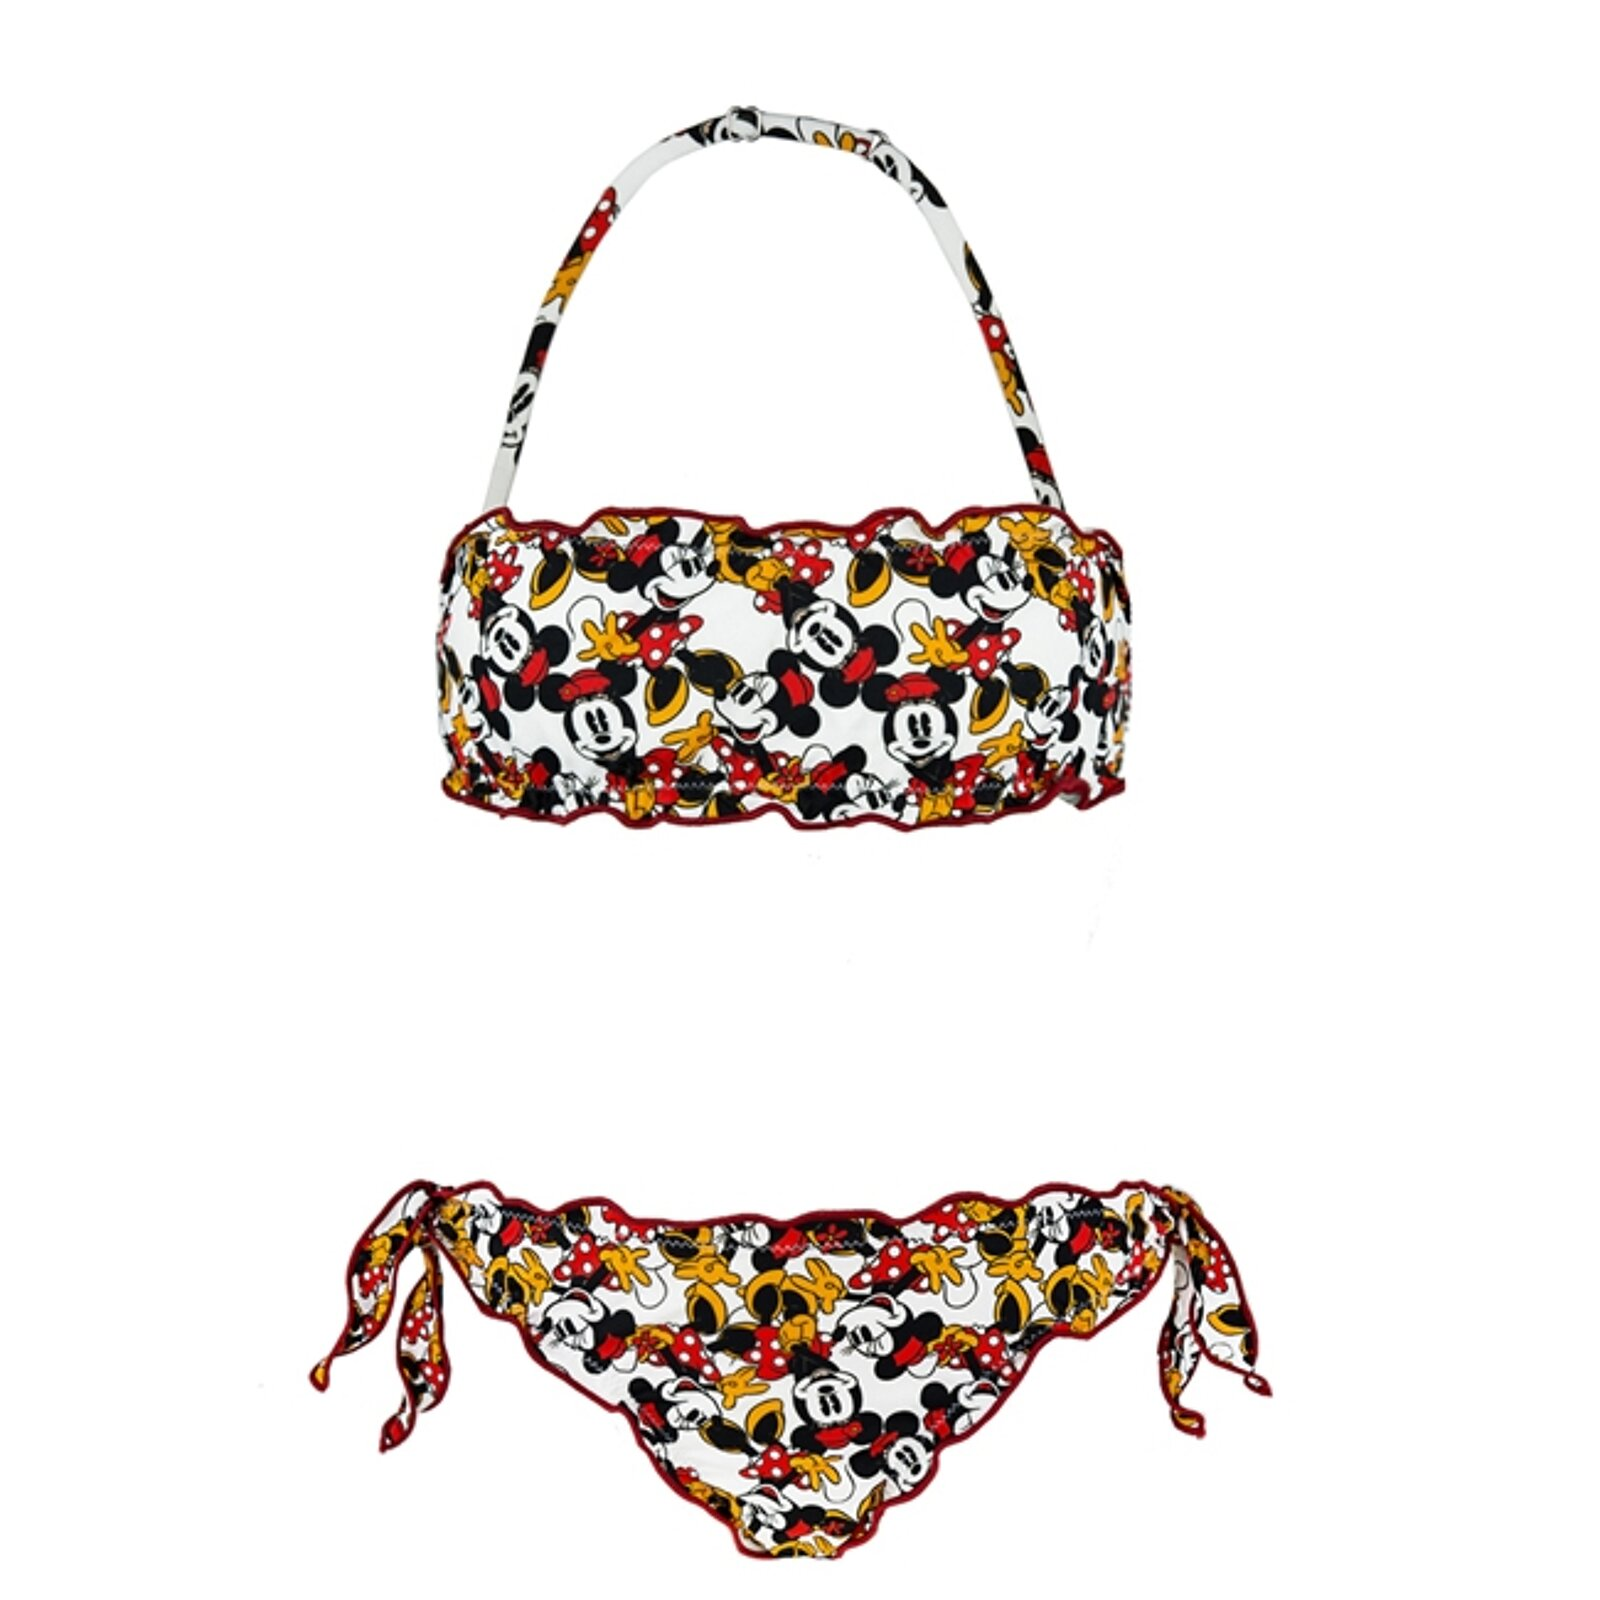 Bikini Bambina Con Stampa Cartone Animato - MC2 Saint Barth Junior